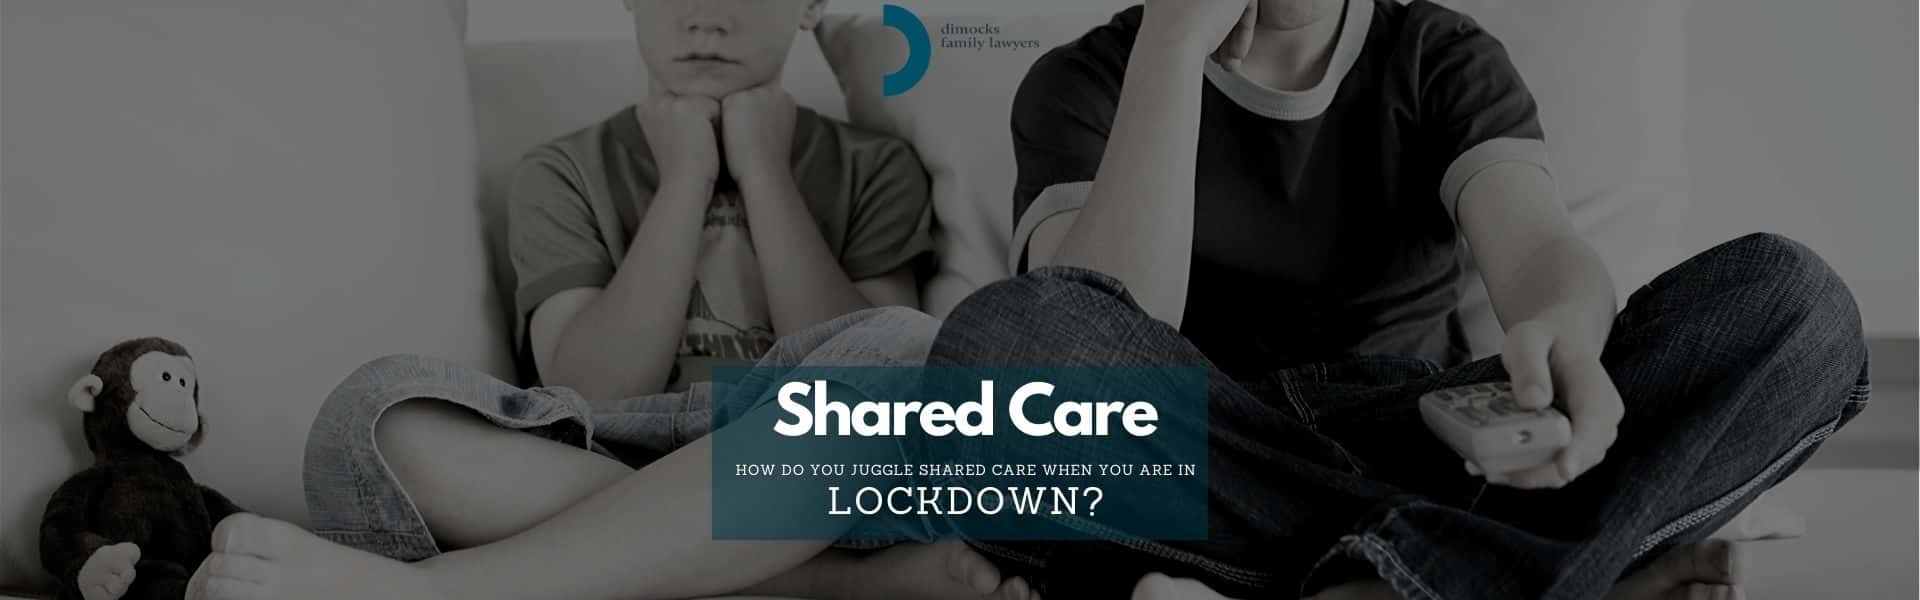 Shared Care in Lockdown Family Divorce Lawyer Sydney